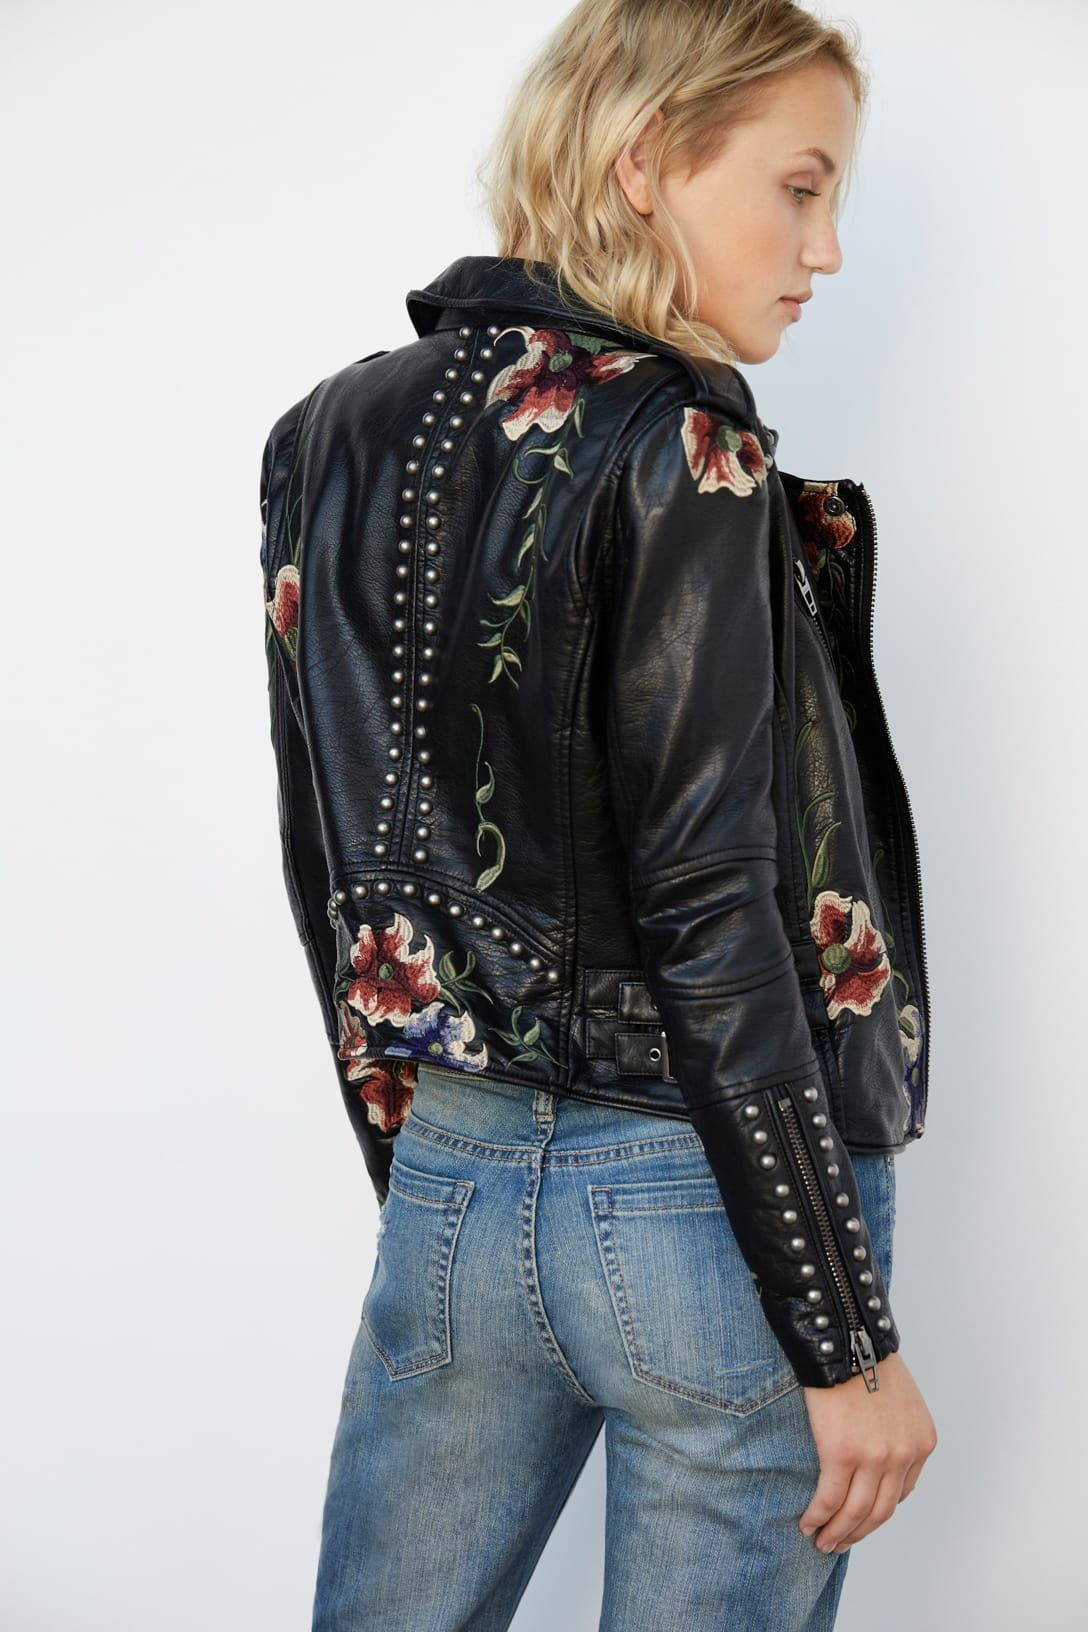 Floral embroidered leather jacket Vegan leather jacket